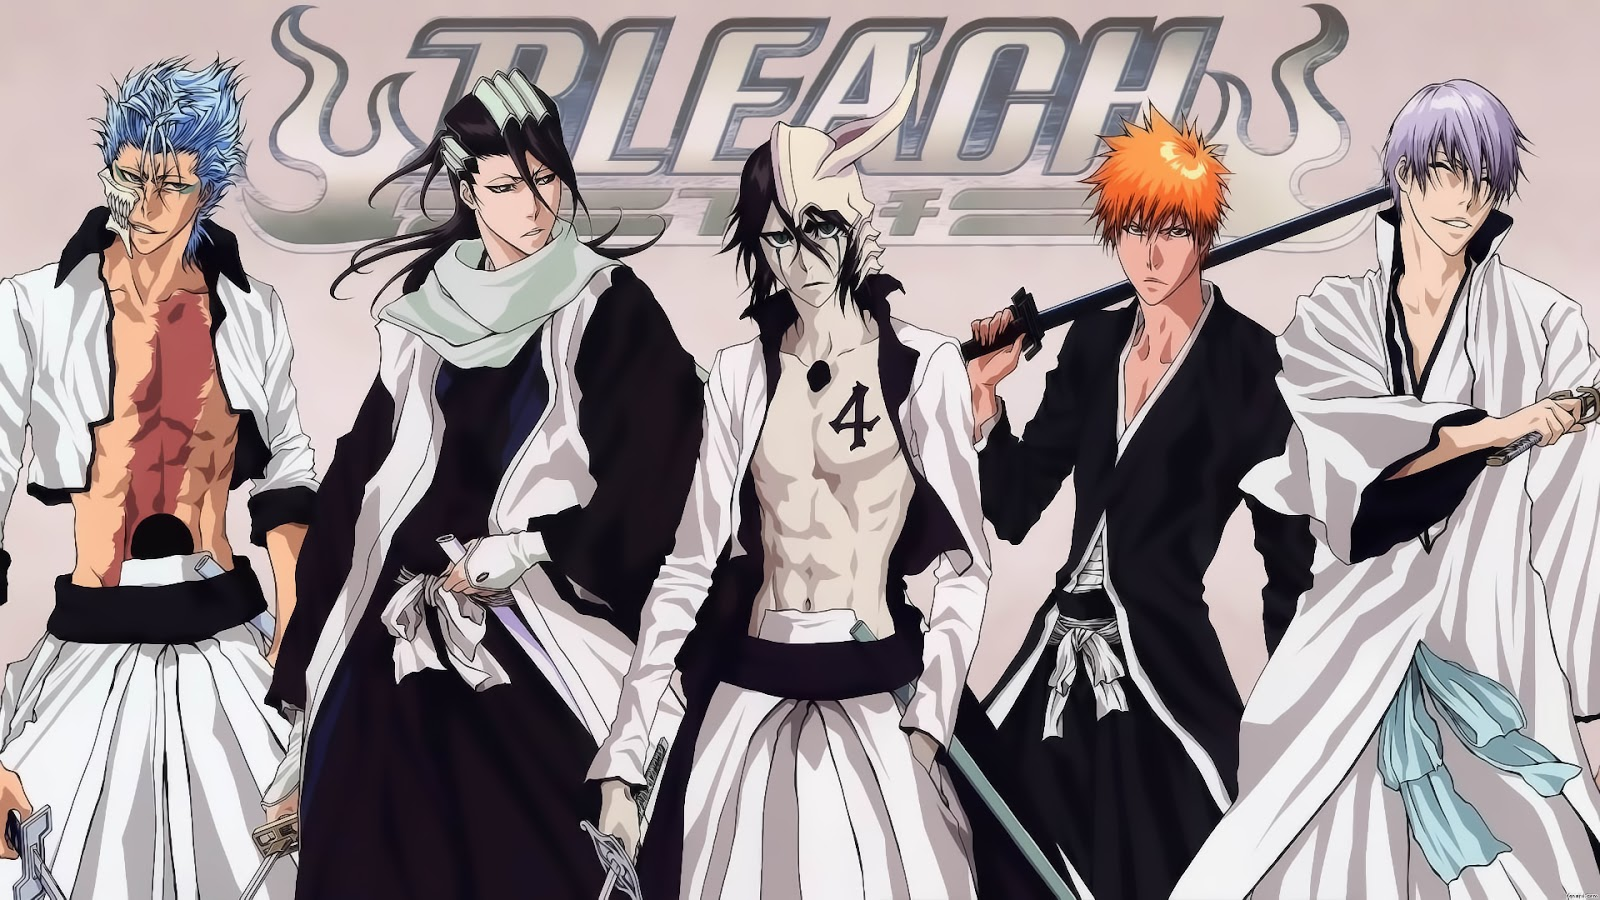 bleach 330 vostfr sd